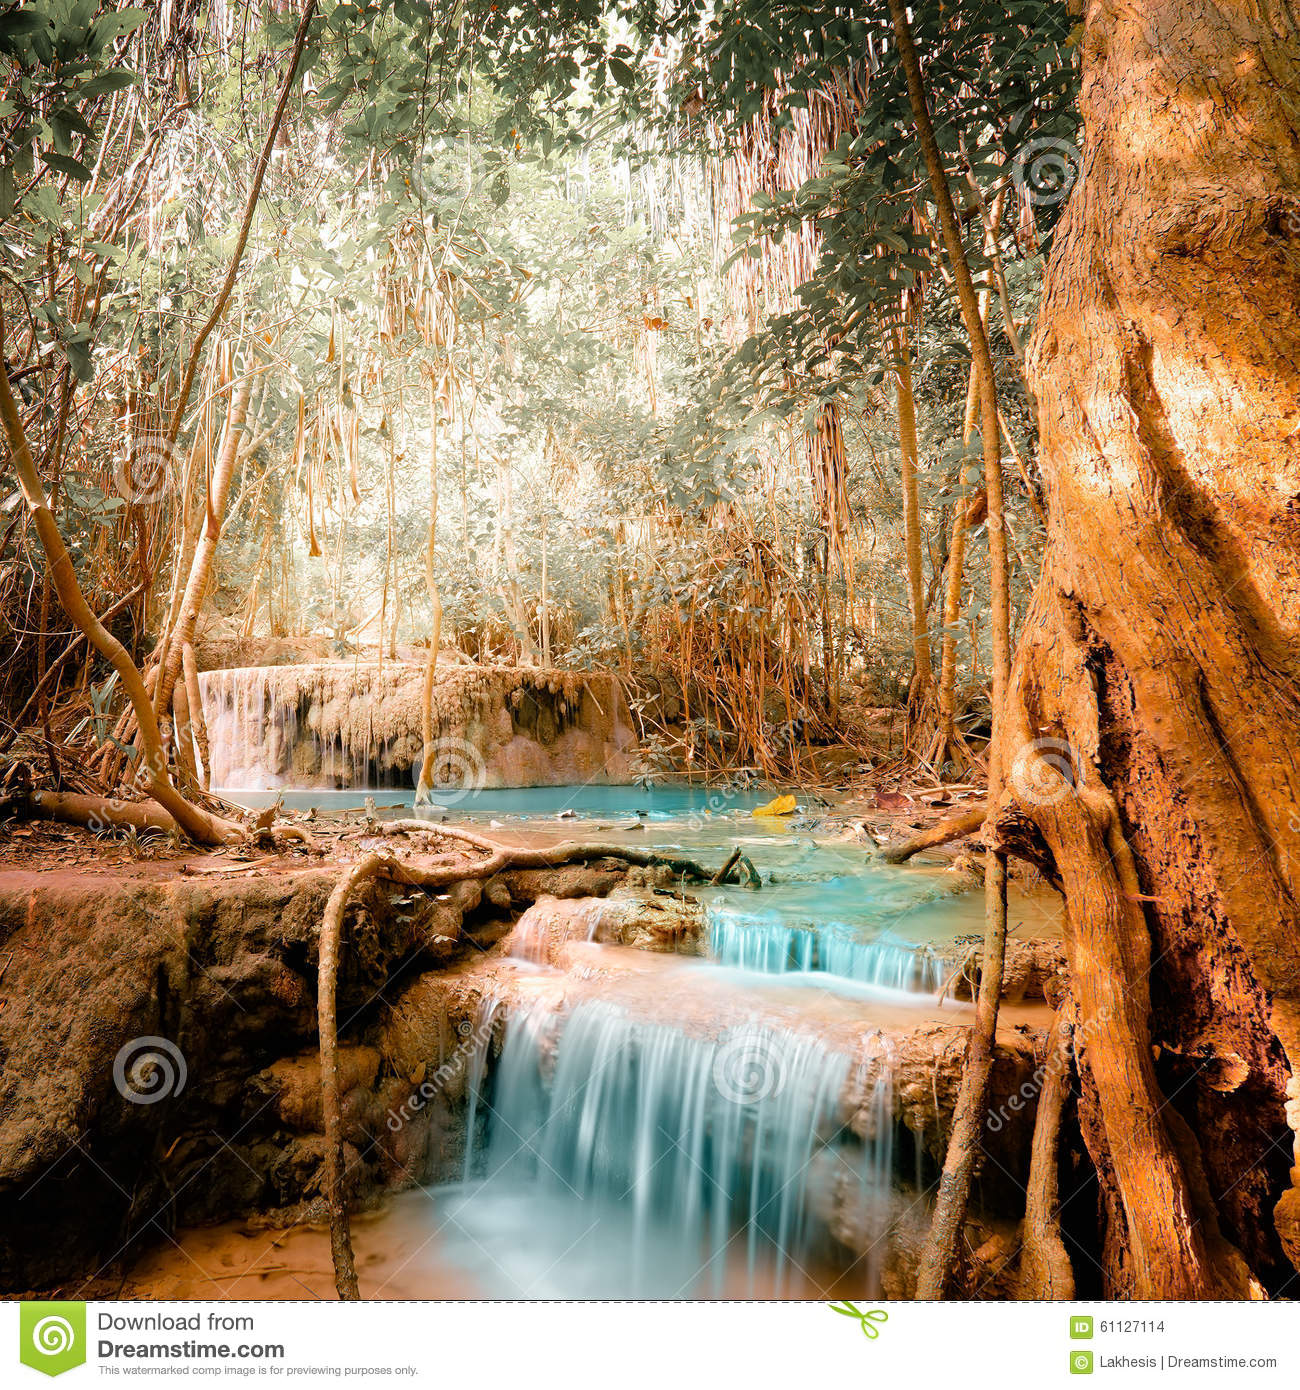 Nature Images 2mb: Fantasy Jangle Landscape With Turquoise Waterfall Stock